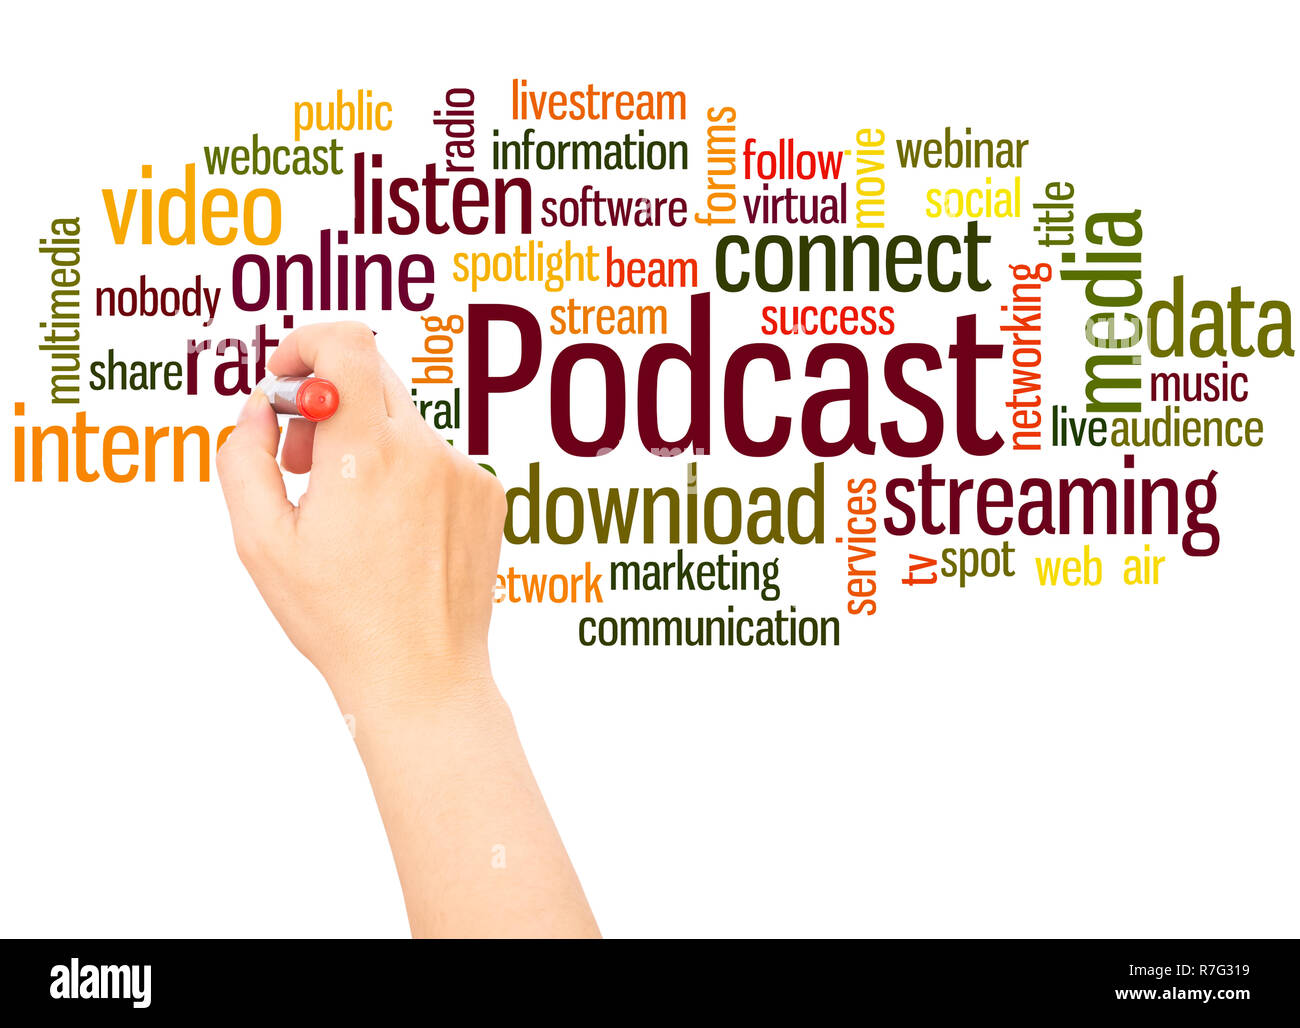 Podcast word cloud hand writing concept on white background. - Stock Image